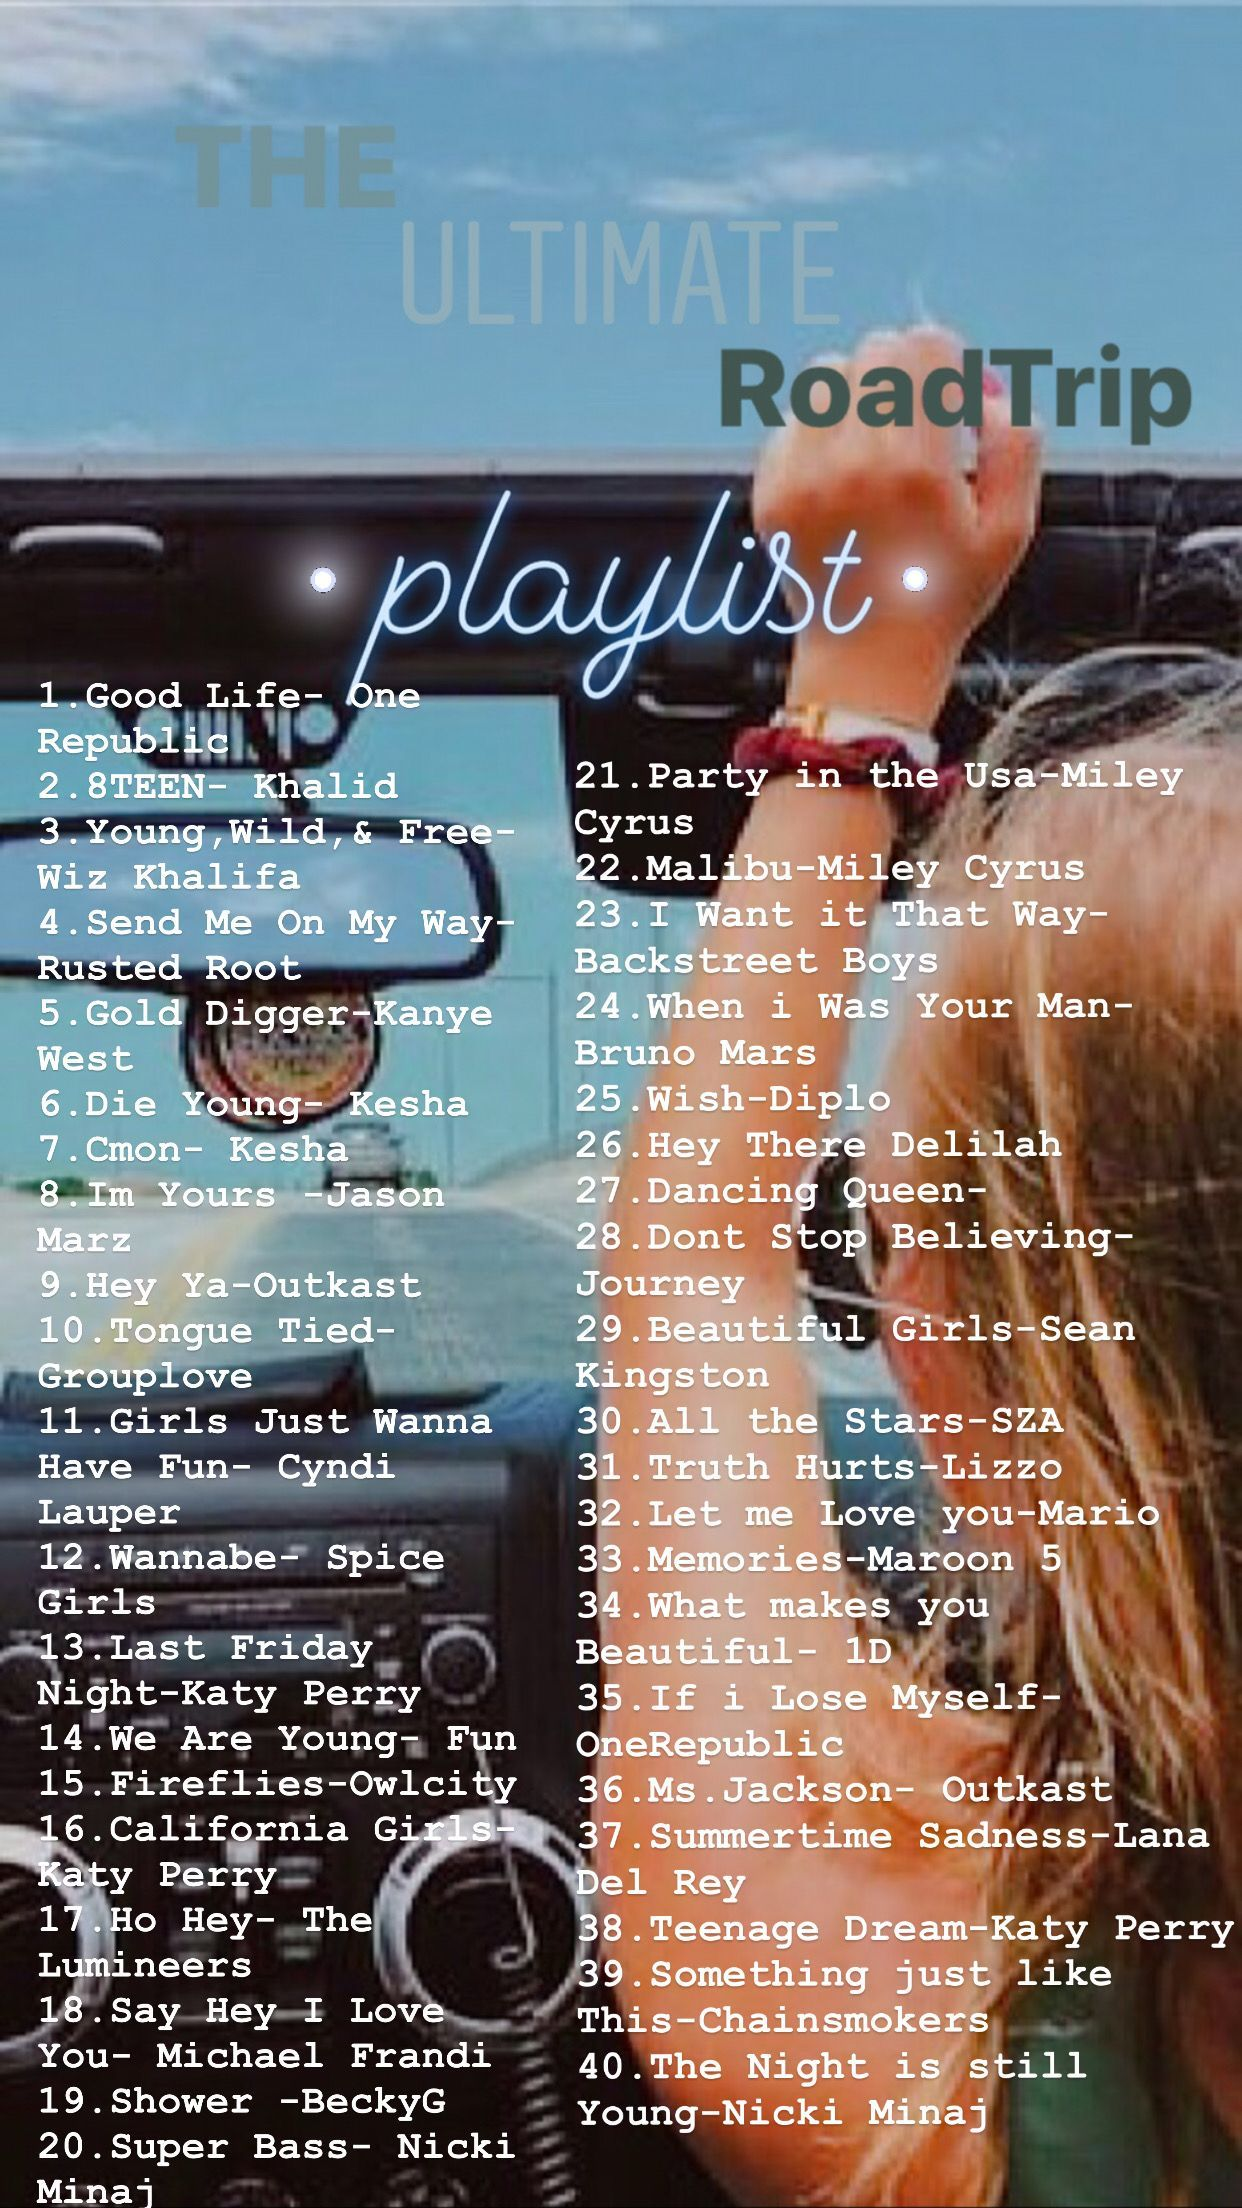 Hype And Sing Out Loud Songs For That Road Triphype And Sing Out Loud Songs For That Road Trip Pla Summer Songs Playlist Good Vibe Songs Song Playlist